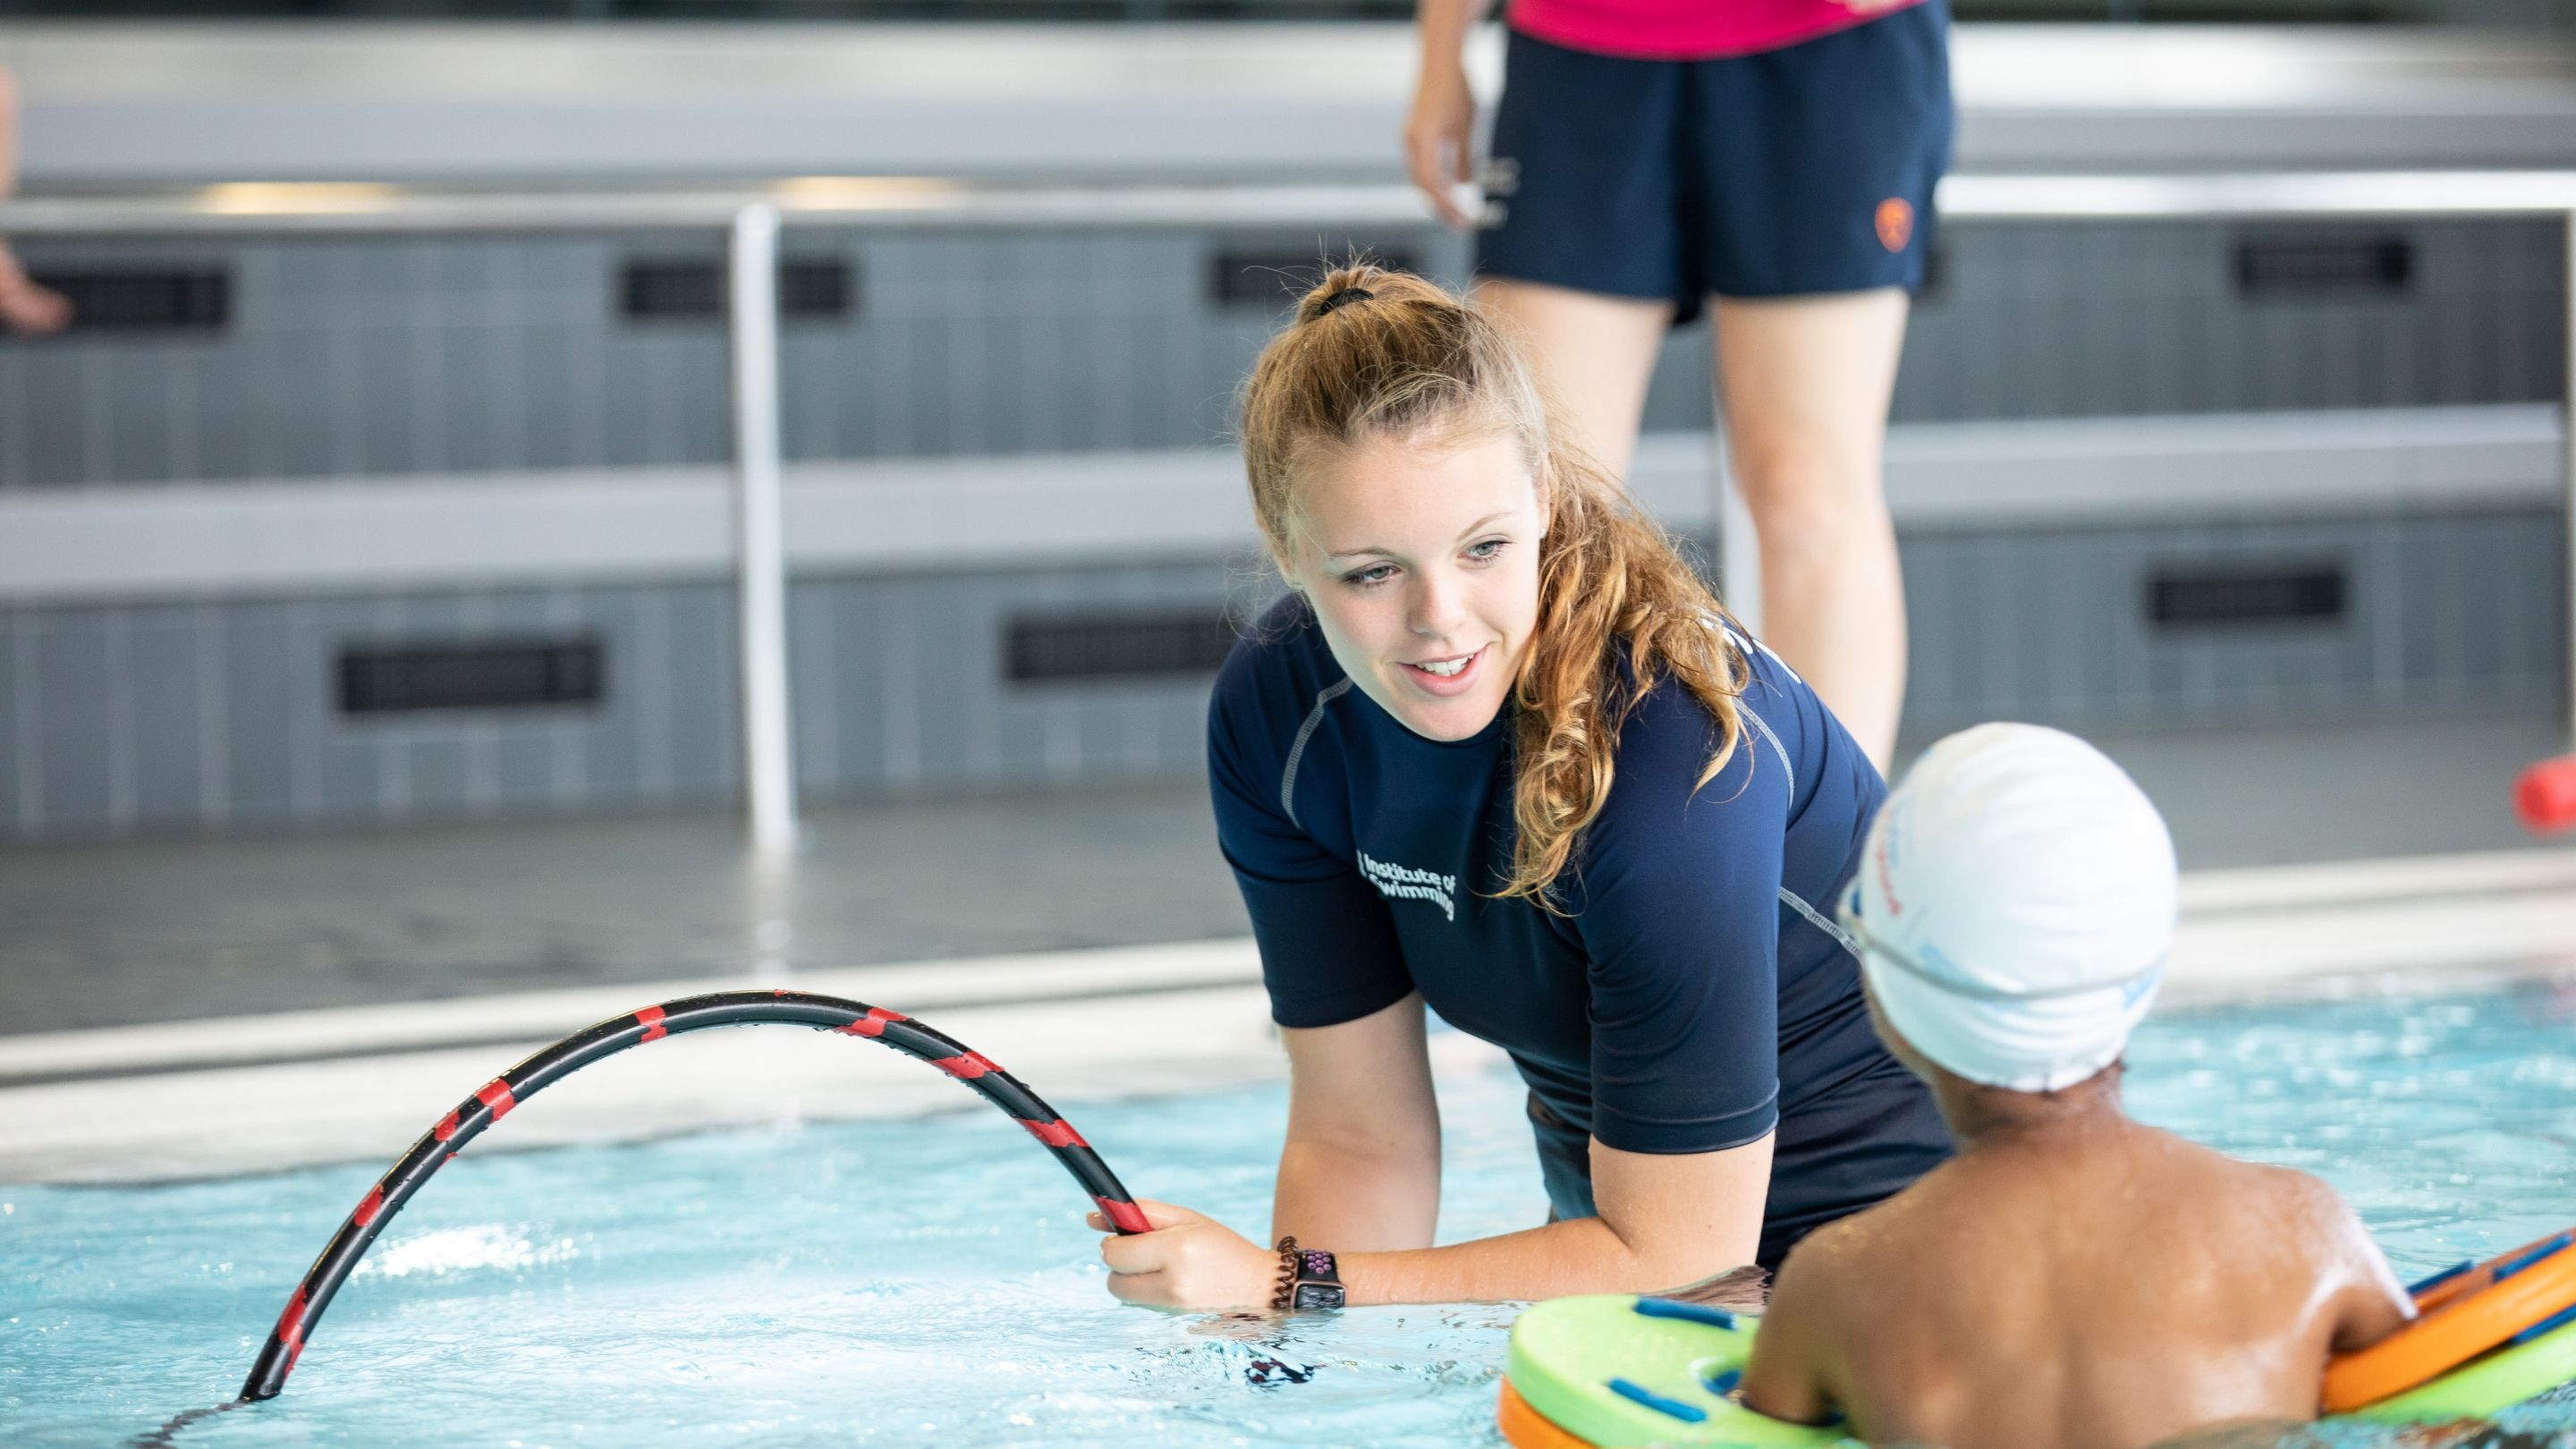 SEQ Level 1 Swimming Assistant (Teaching) - Blended Learning